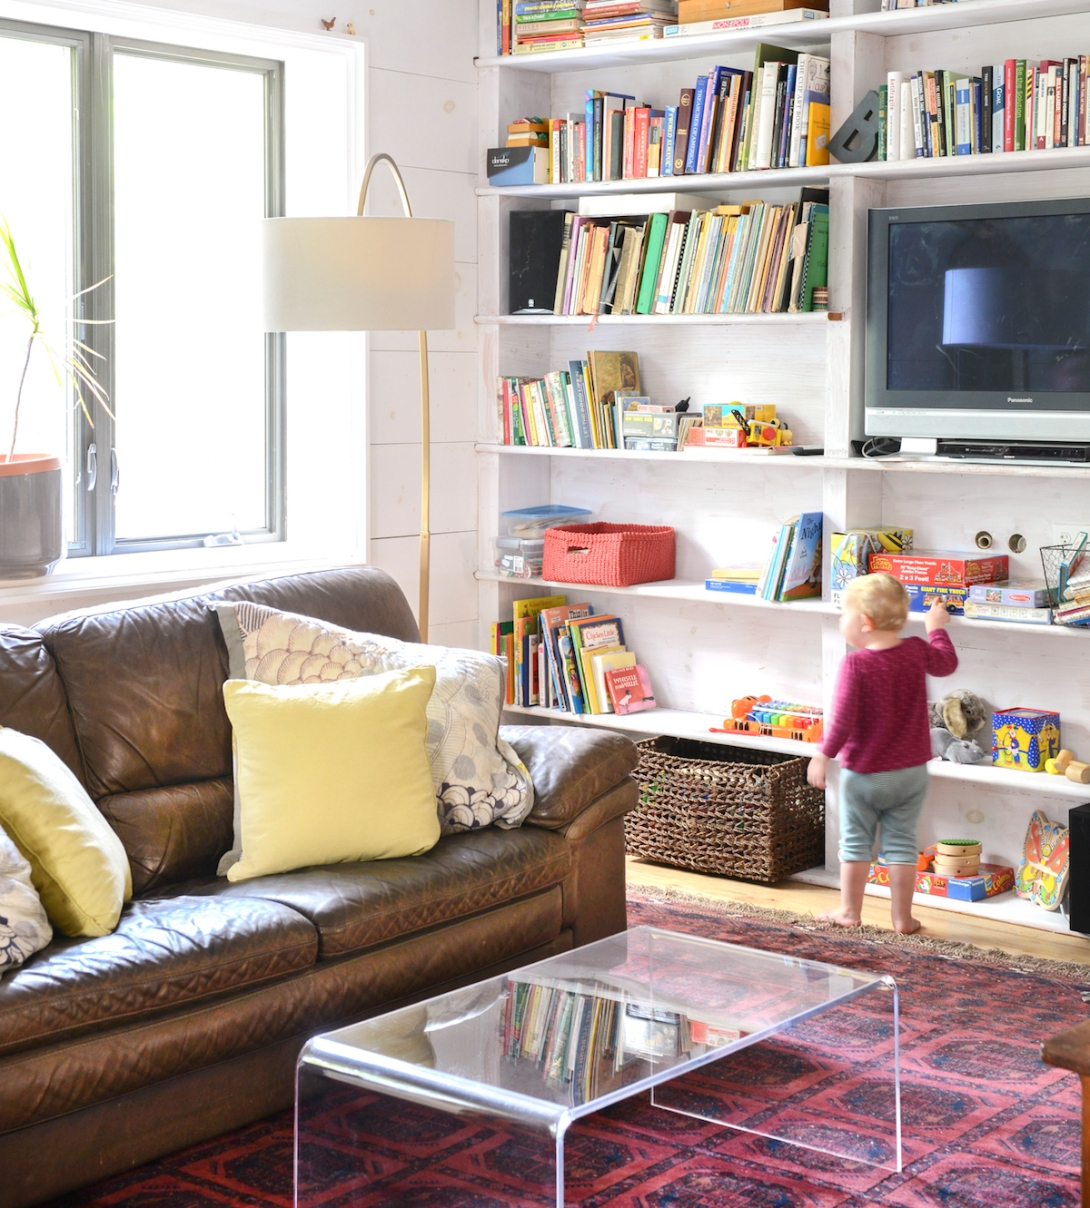 Lovable Livable Home Take Focus off the TV Todd Wright